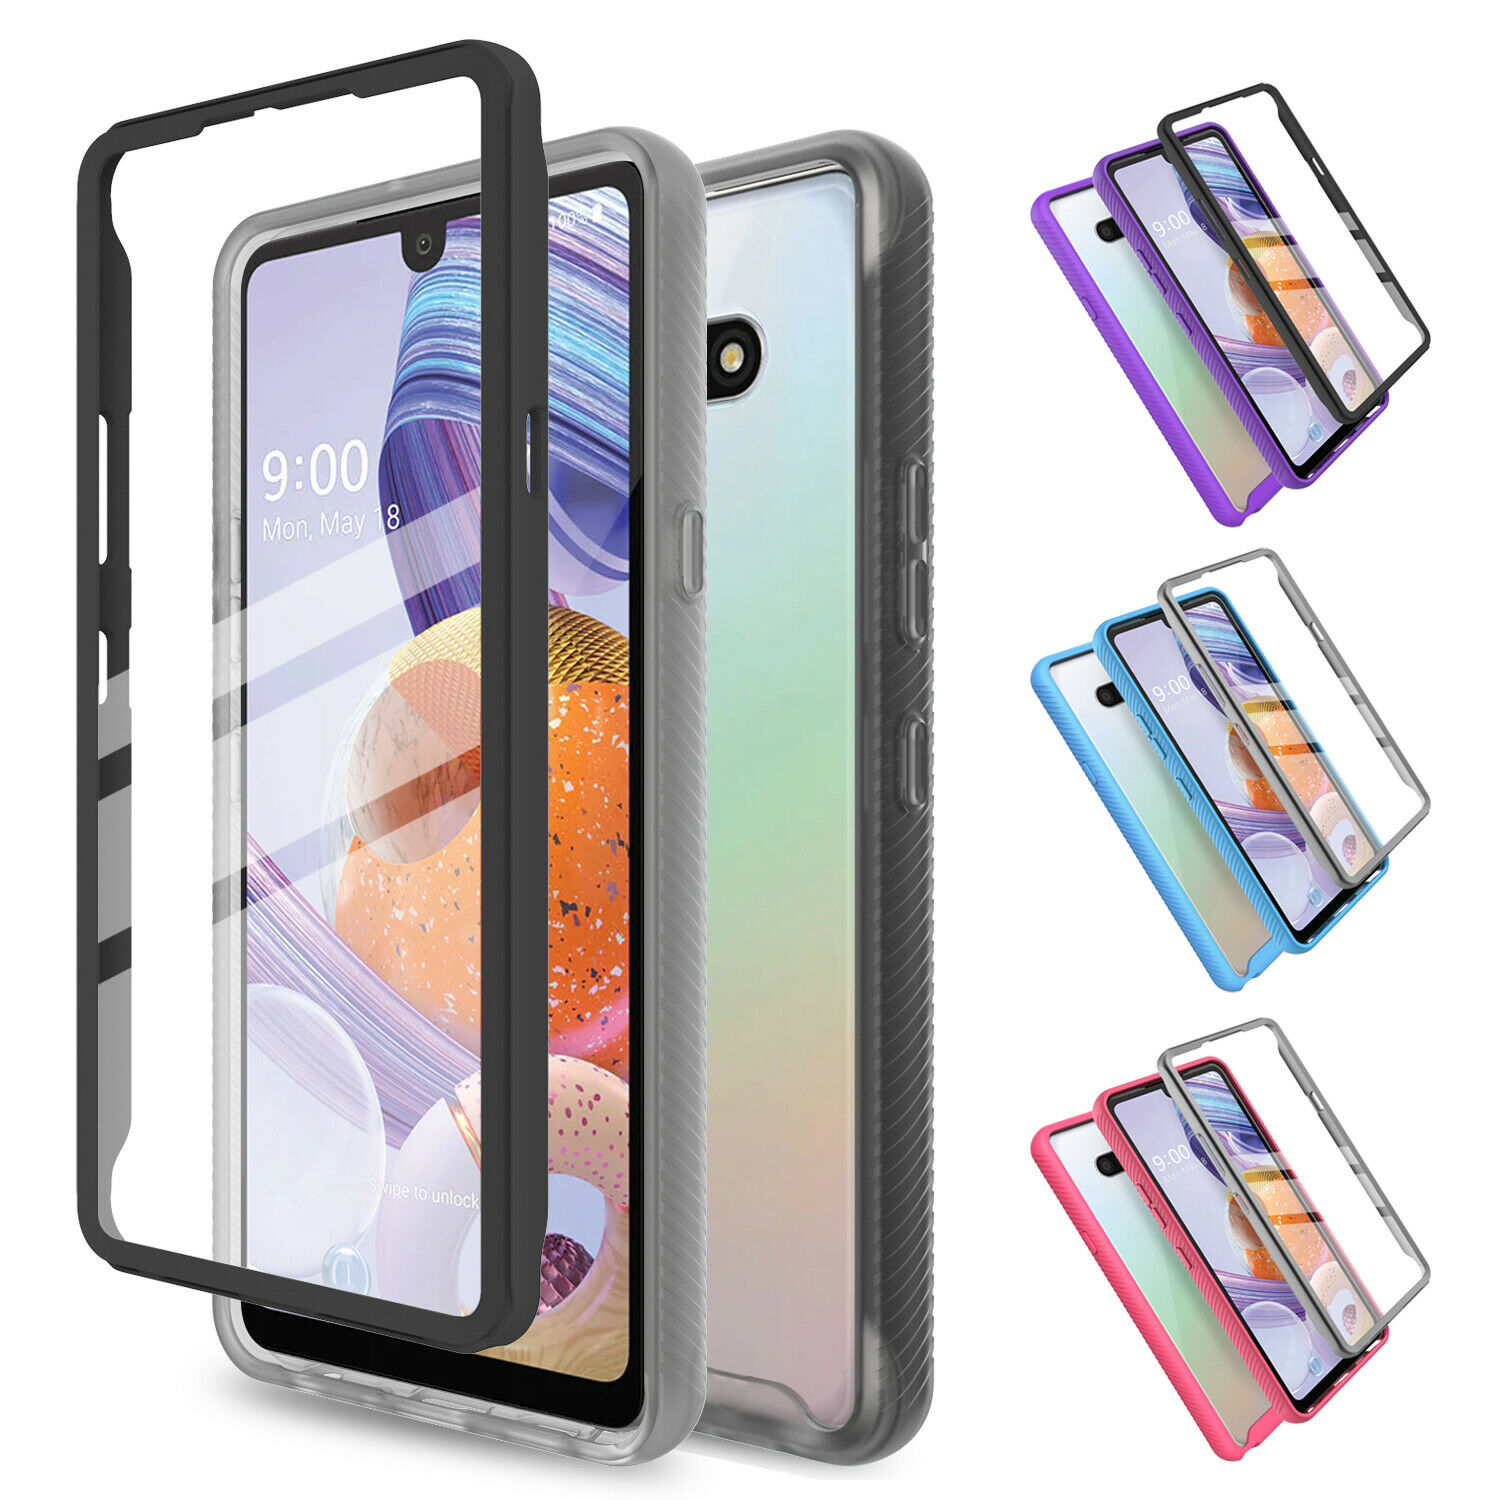 For LG Stylo 6 Shockproof Clear Slim Case Cover With Built-in Screen Protector Cases, Covers & Skins